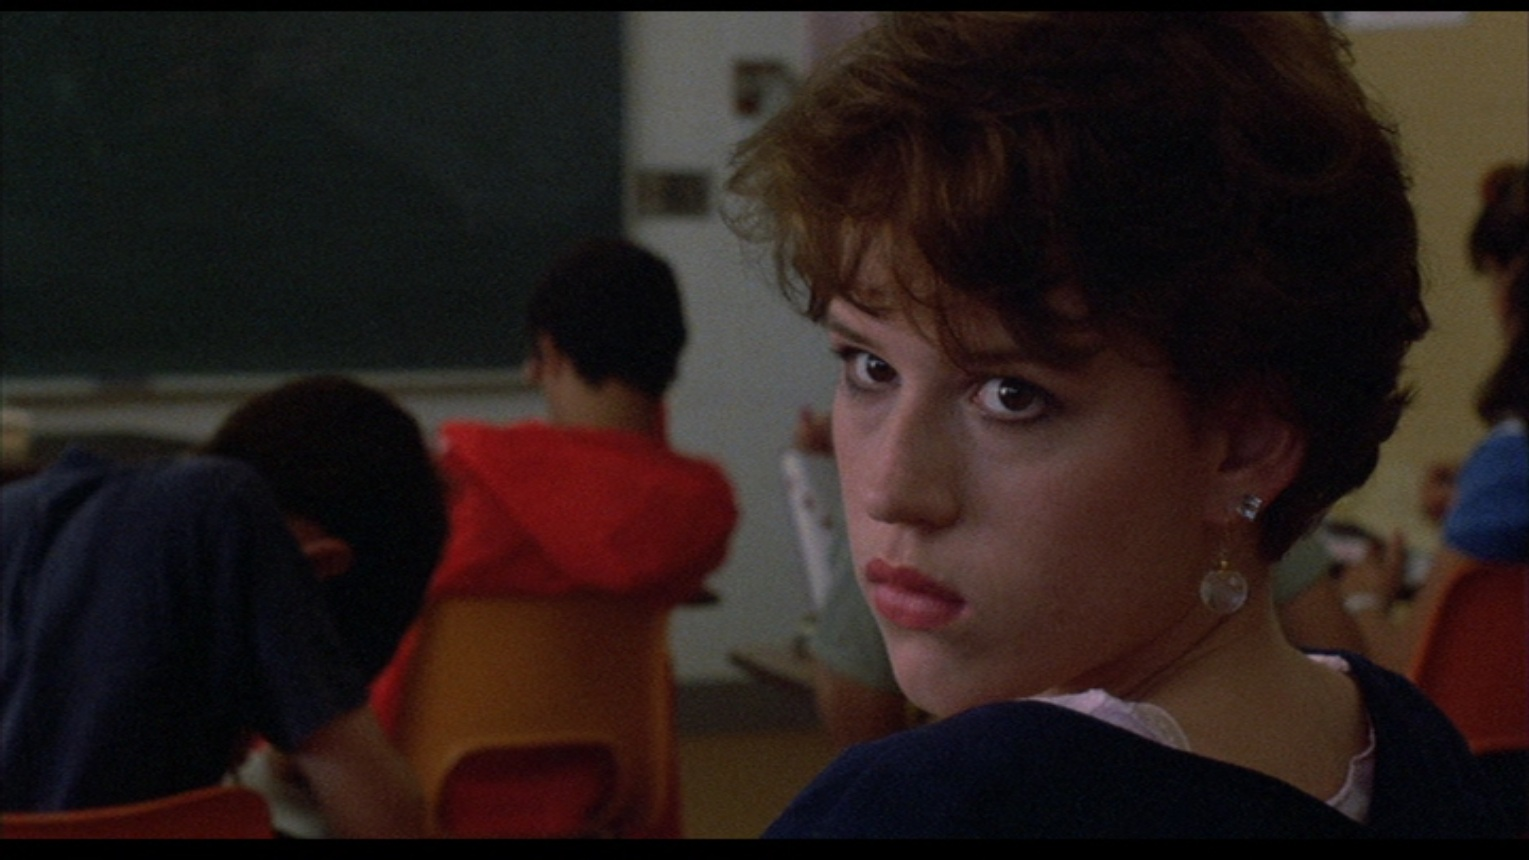 an analysis of the movie sixteen candles The sixteen-year-old has a crush on the most popular boy in school, and the geekiest boy in school has a crush on her her sister's getting married, and with all the excitement the rest of her family forgets her birthday.